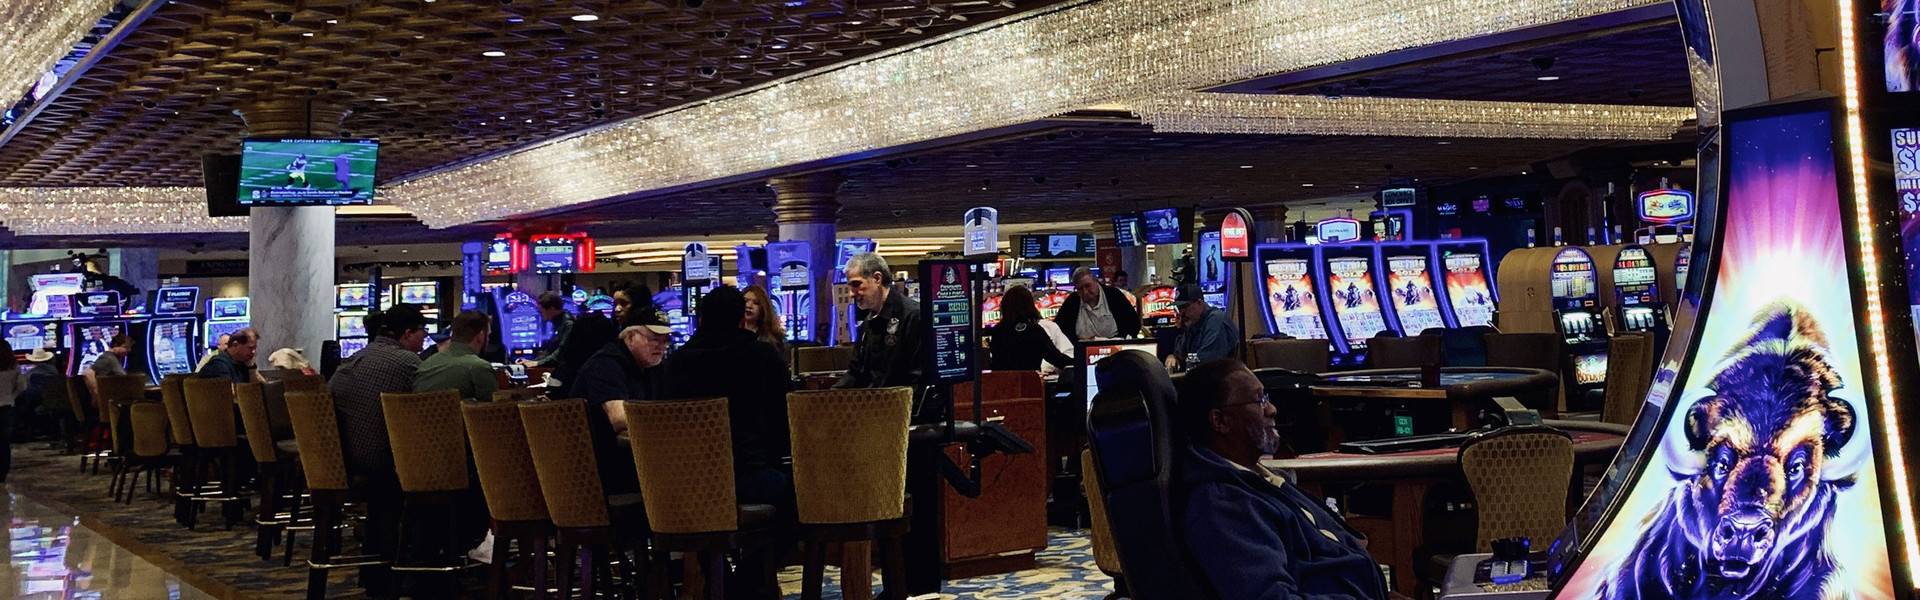 Rewards Program at our Las Vegas Hotel and Casino | Westgate Las Vegas Casino